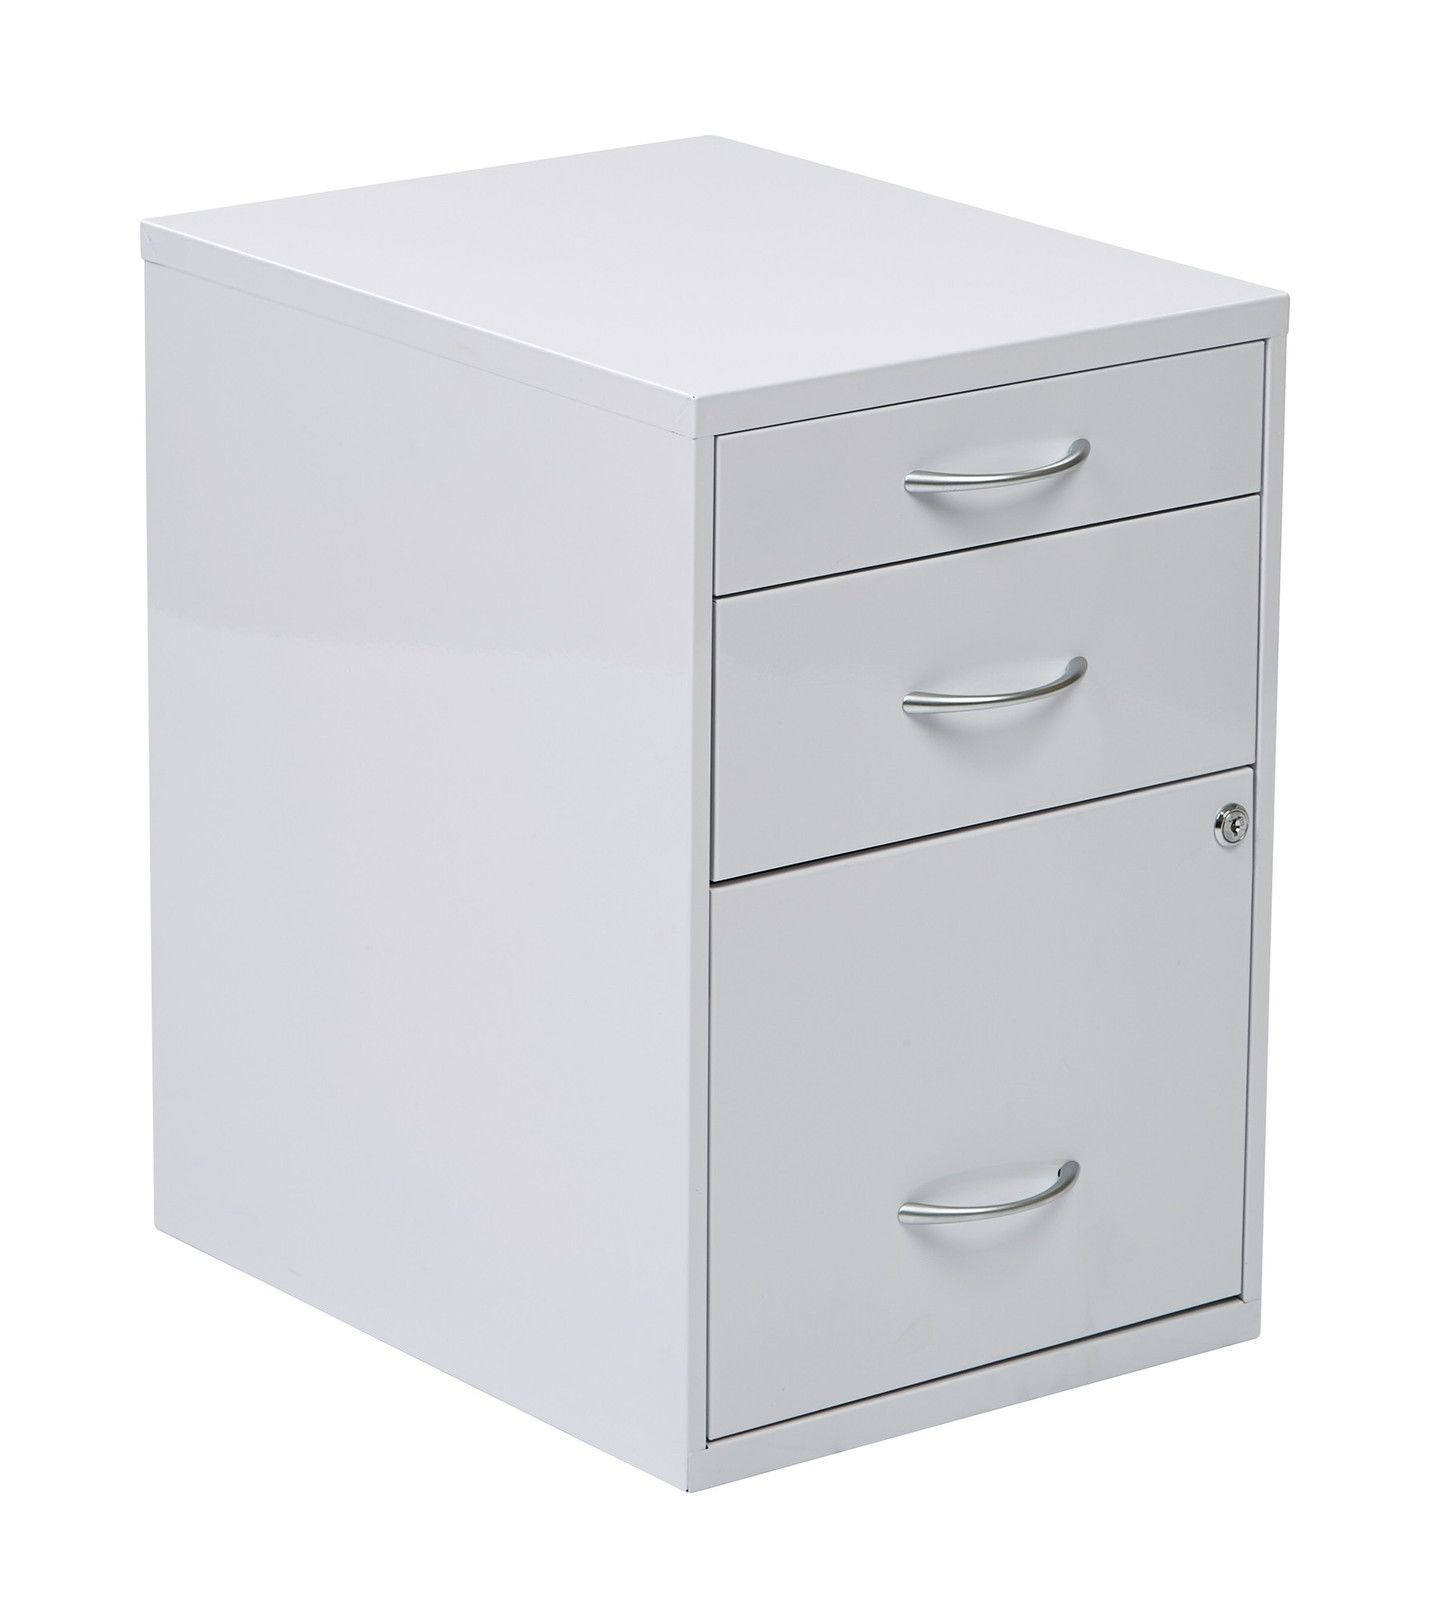 filing cabinets file home design size of excellent by fuller metal cabinet makeover image